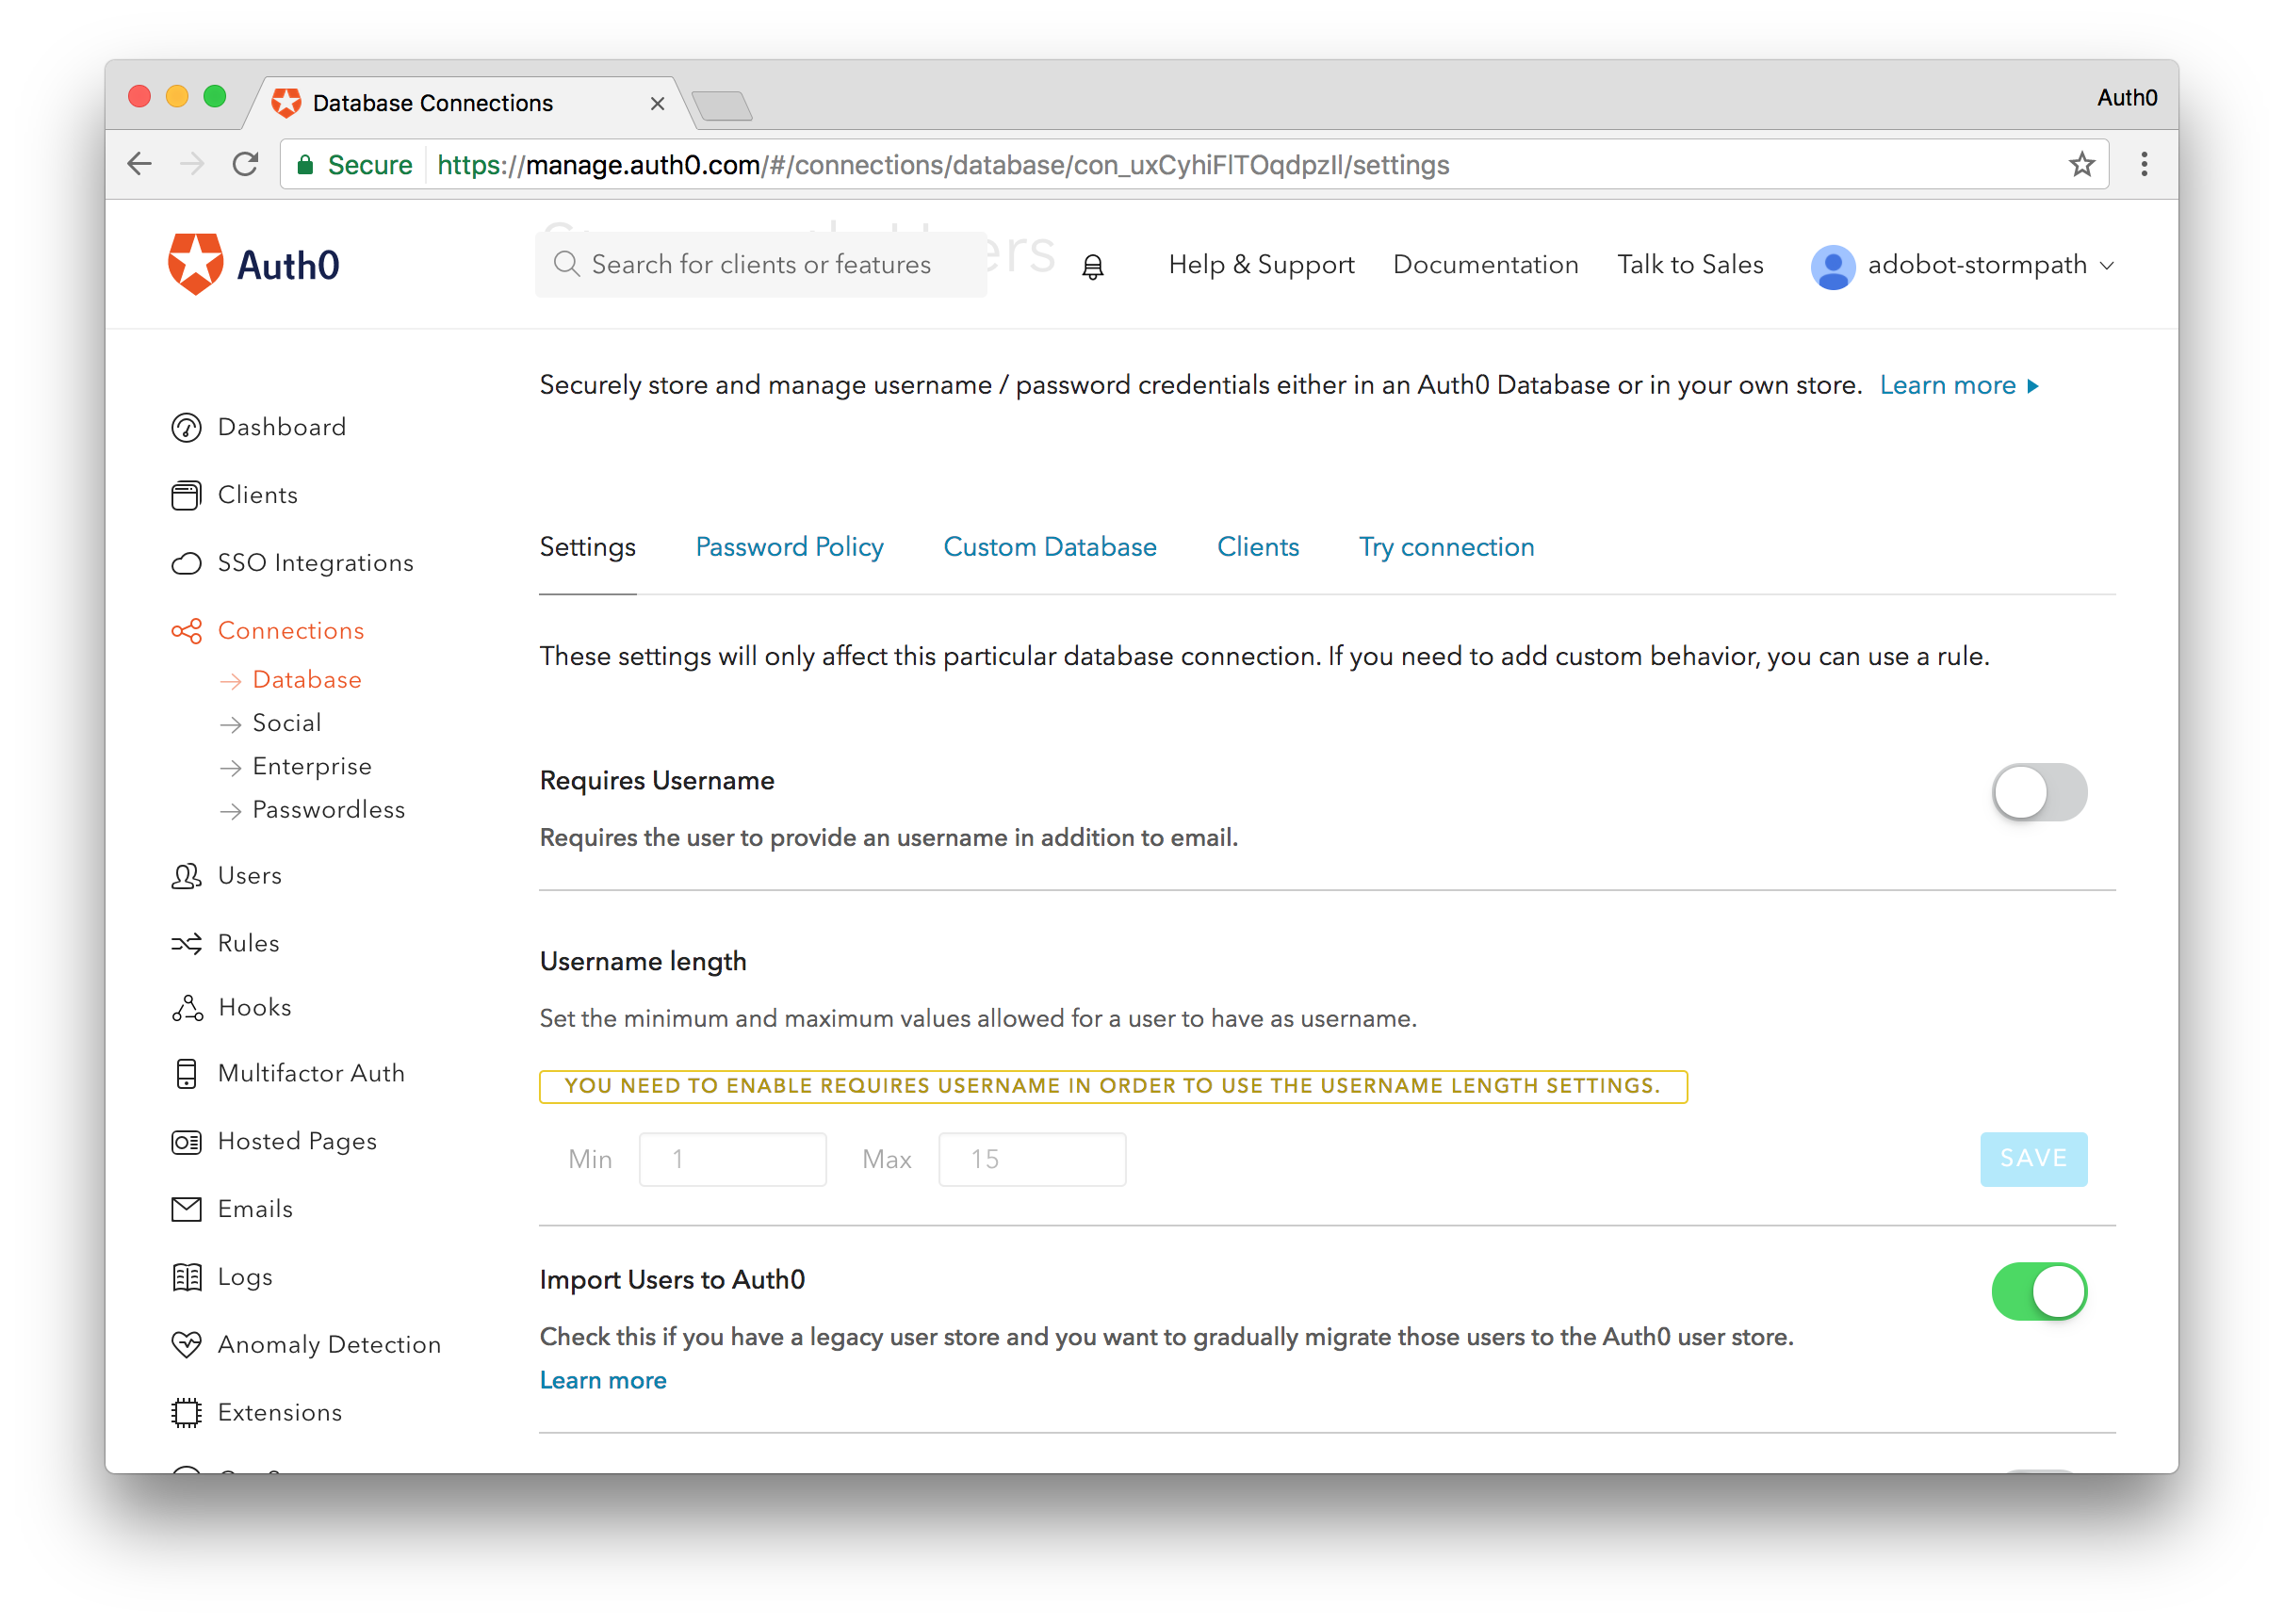 Import Users to Auth0 Switch